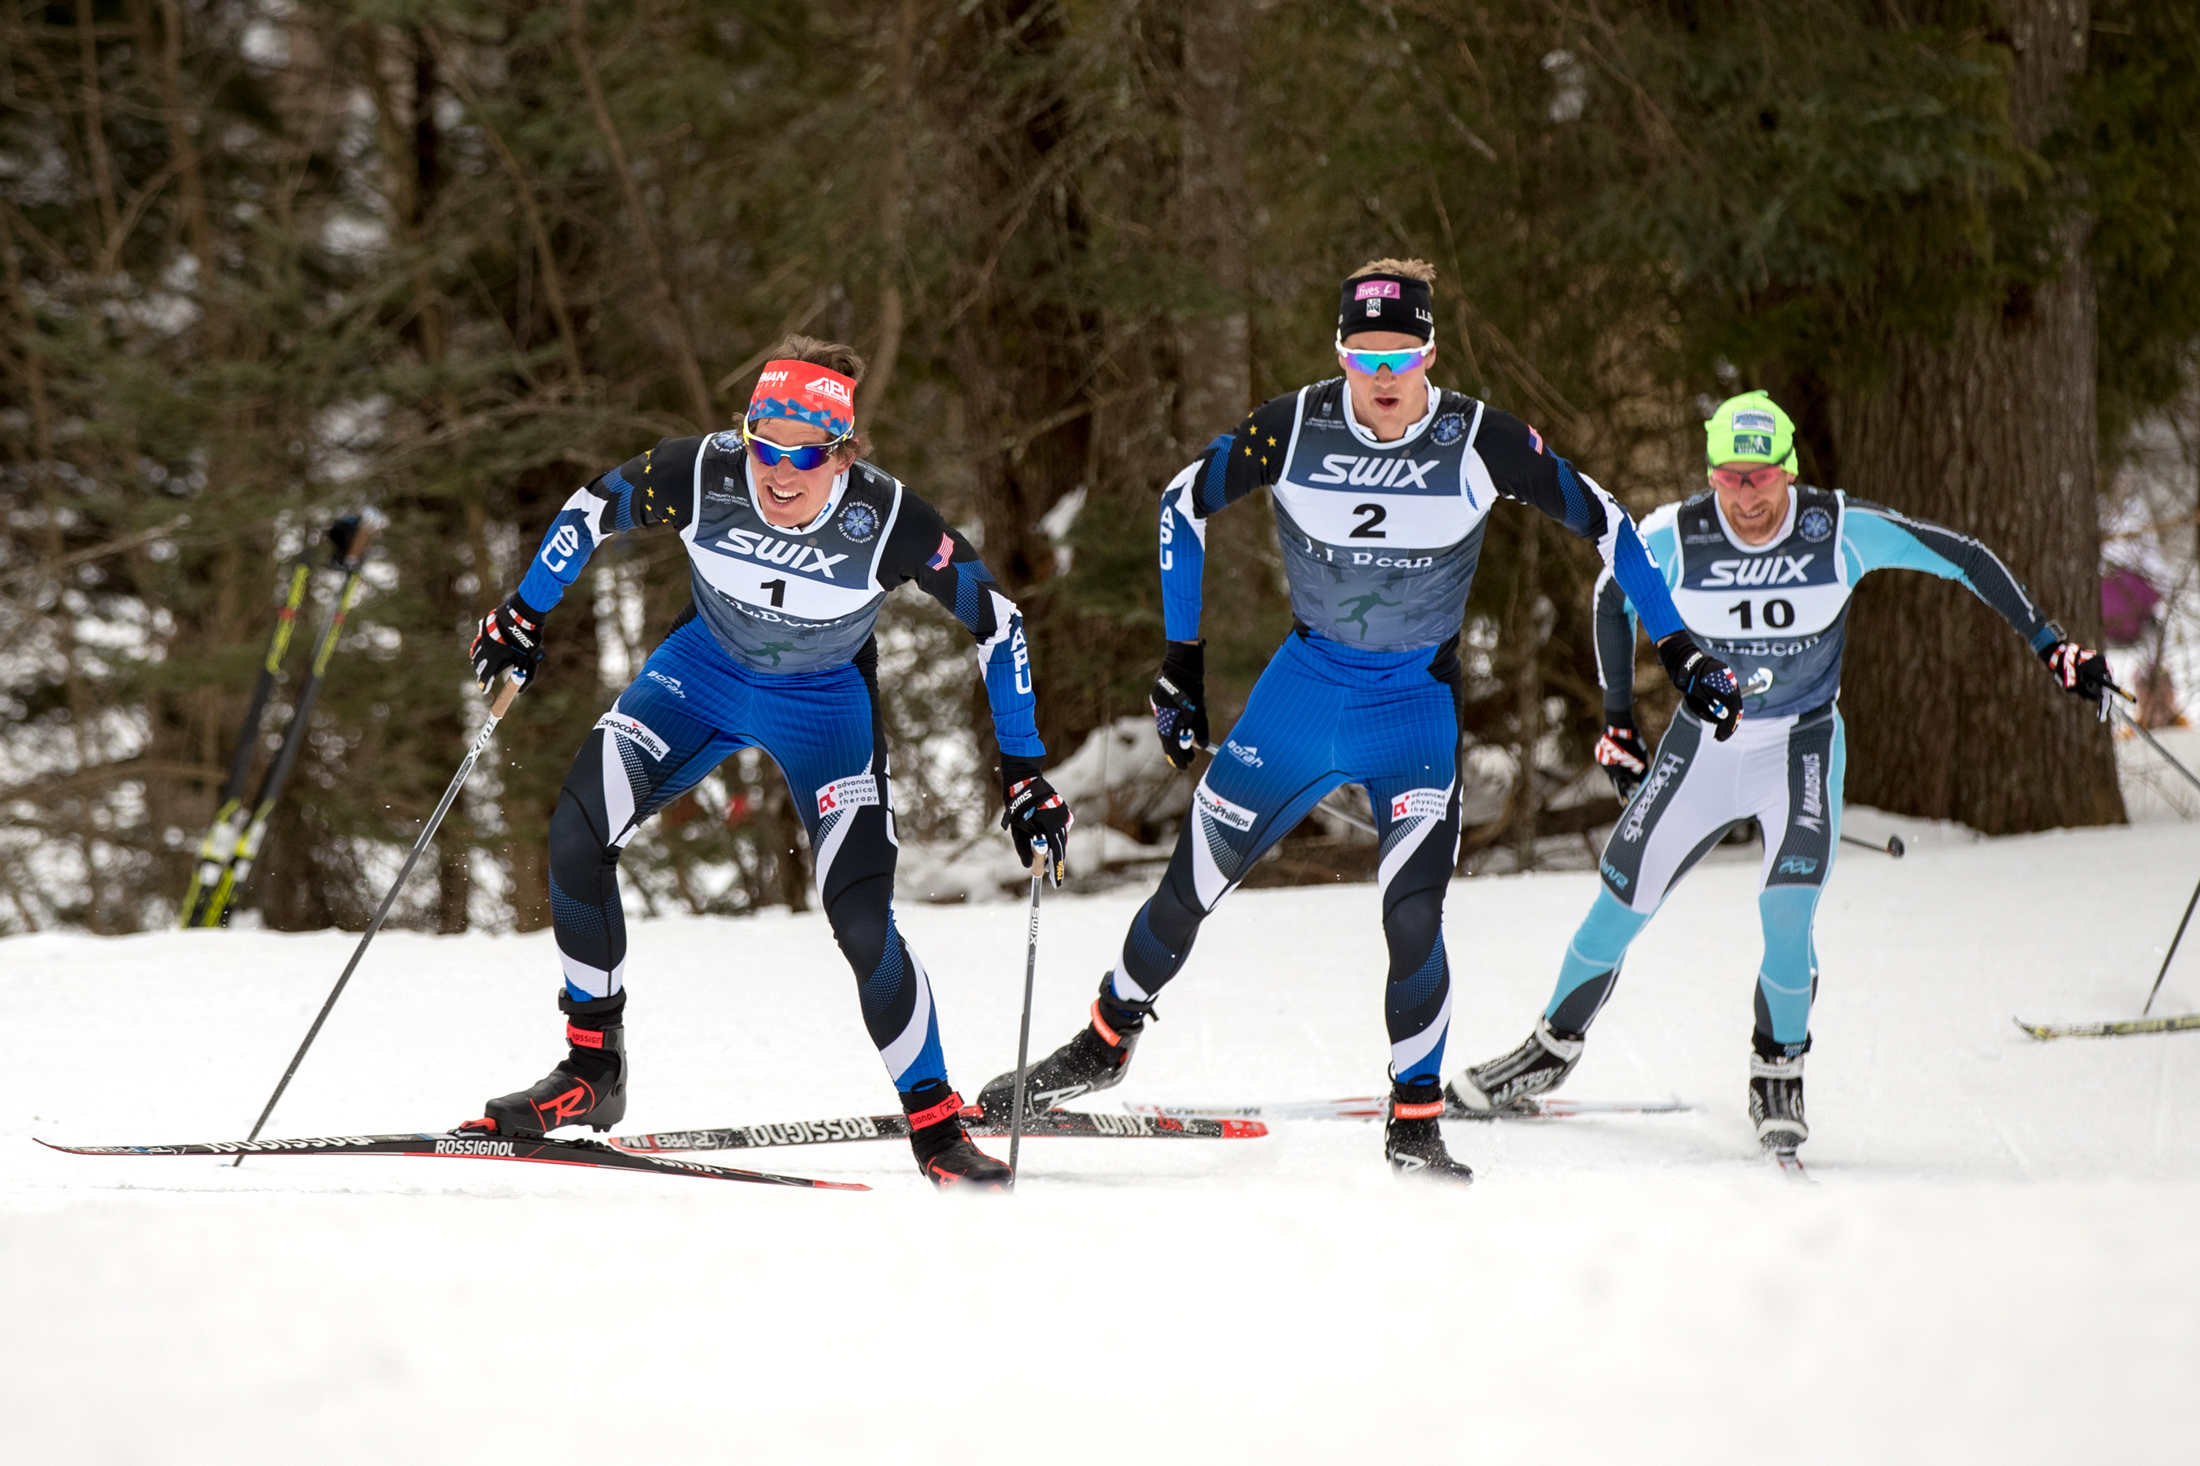 Scott Patterson leads Erik Bjornson and Brian Gregg in the men's 15k freestyle Saturday at the SuperTour Finals in Craftsbury Center, Vt. (U.S. Ski & Snowboard - Reese Brown)